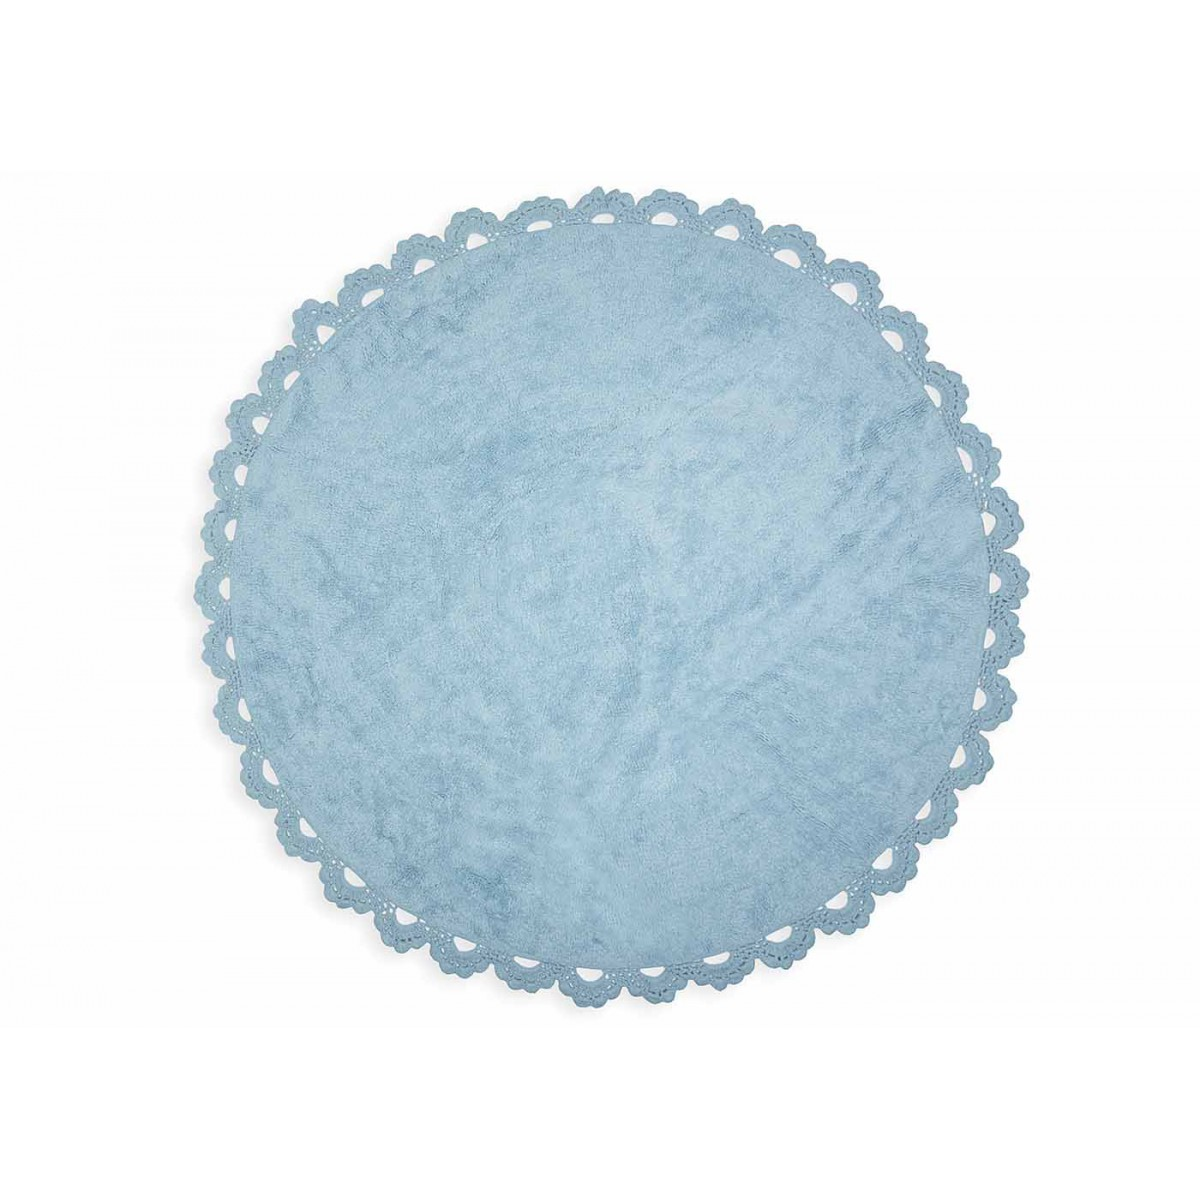 d coration tapis rond bleu 18 creteil tapis rond salon pas cher tapis rond jute 200 cm. Black Bedroom Furniture Sets. Home Design Ideas